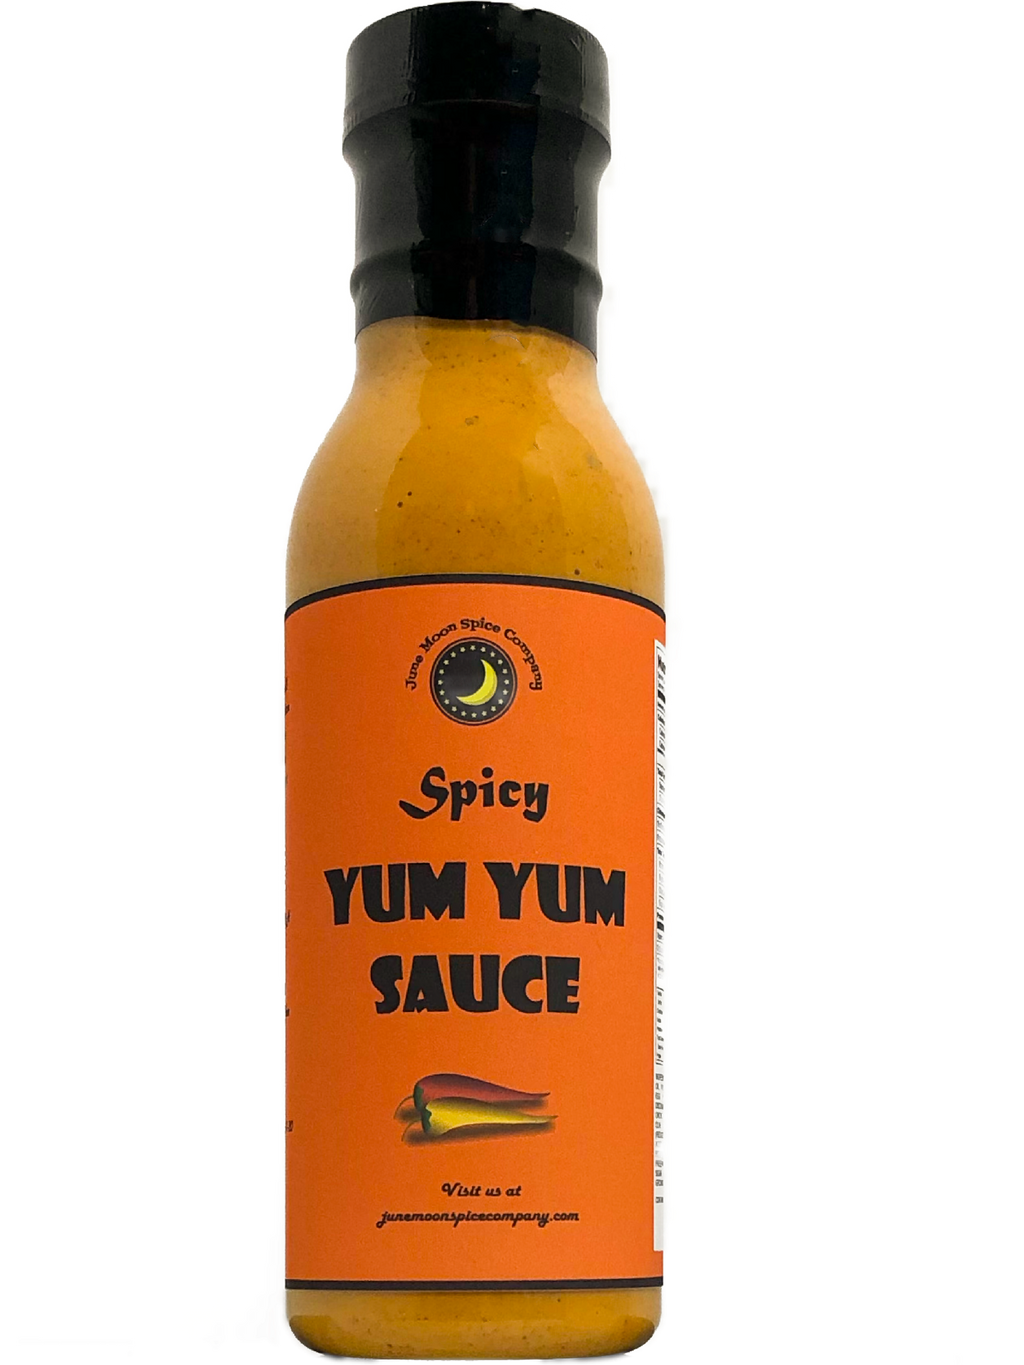 Spicy Yum Yum Sauce